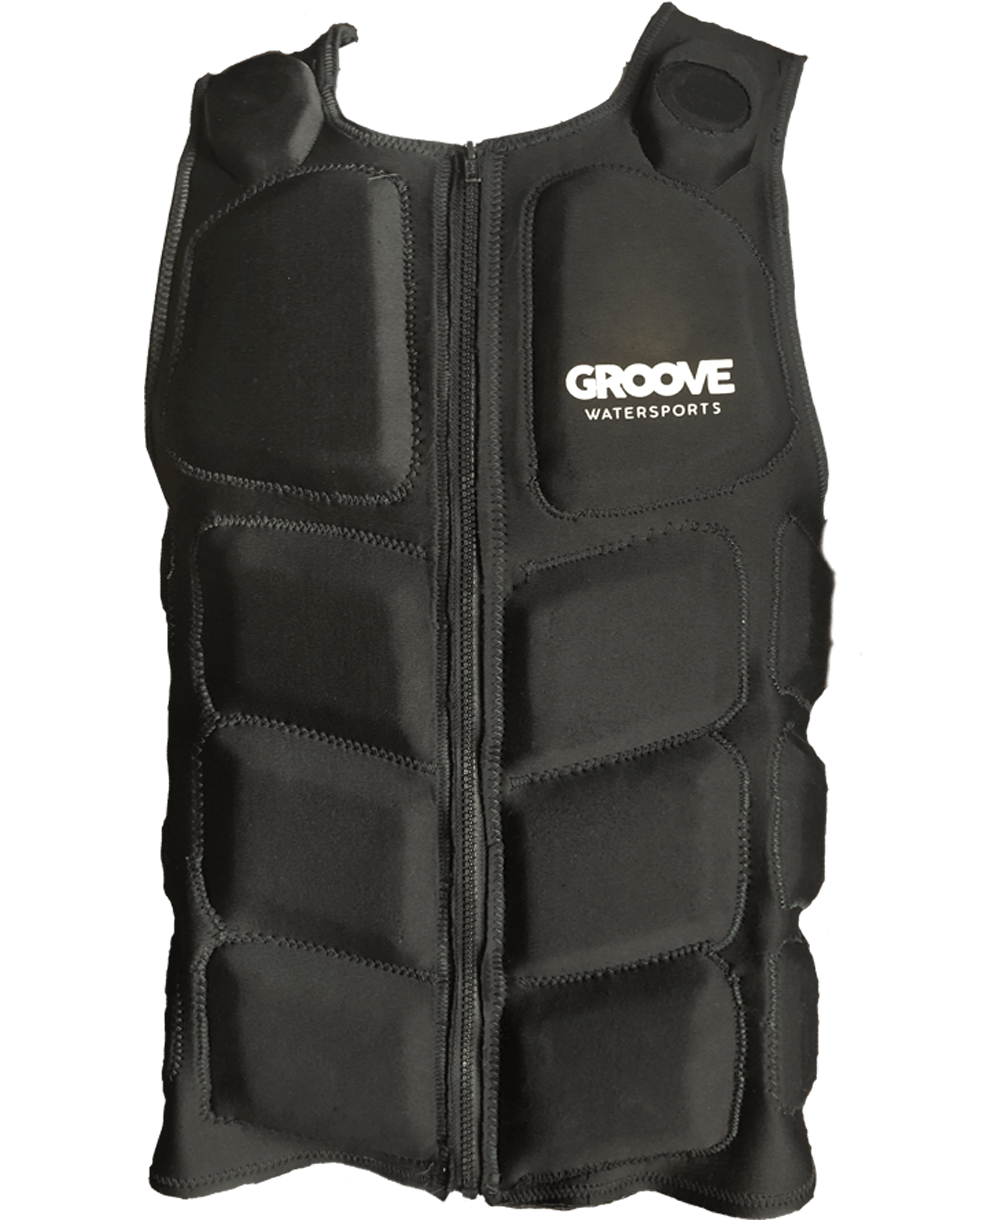 Groove Watersports' the Worlds First Impact Vest with Speakers